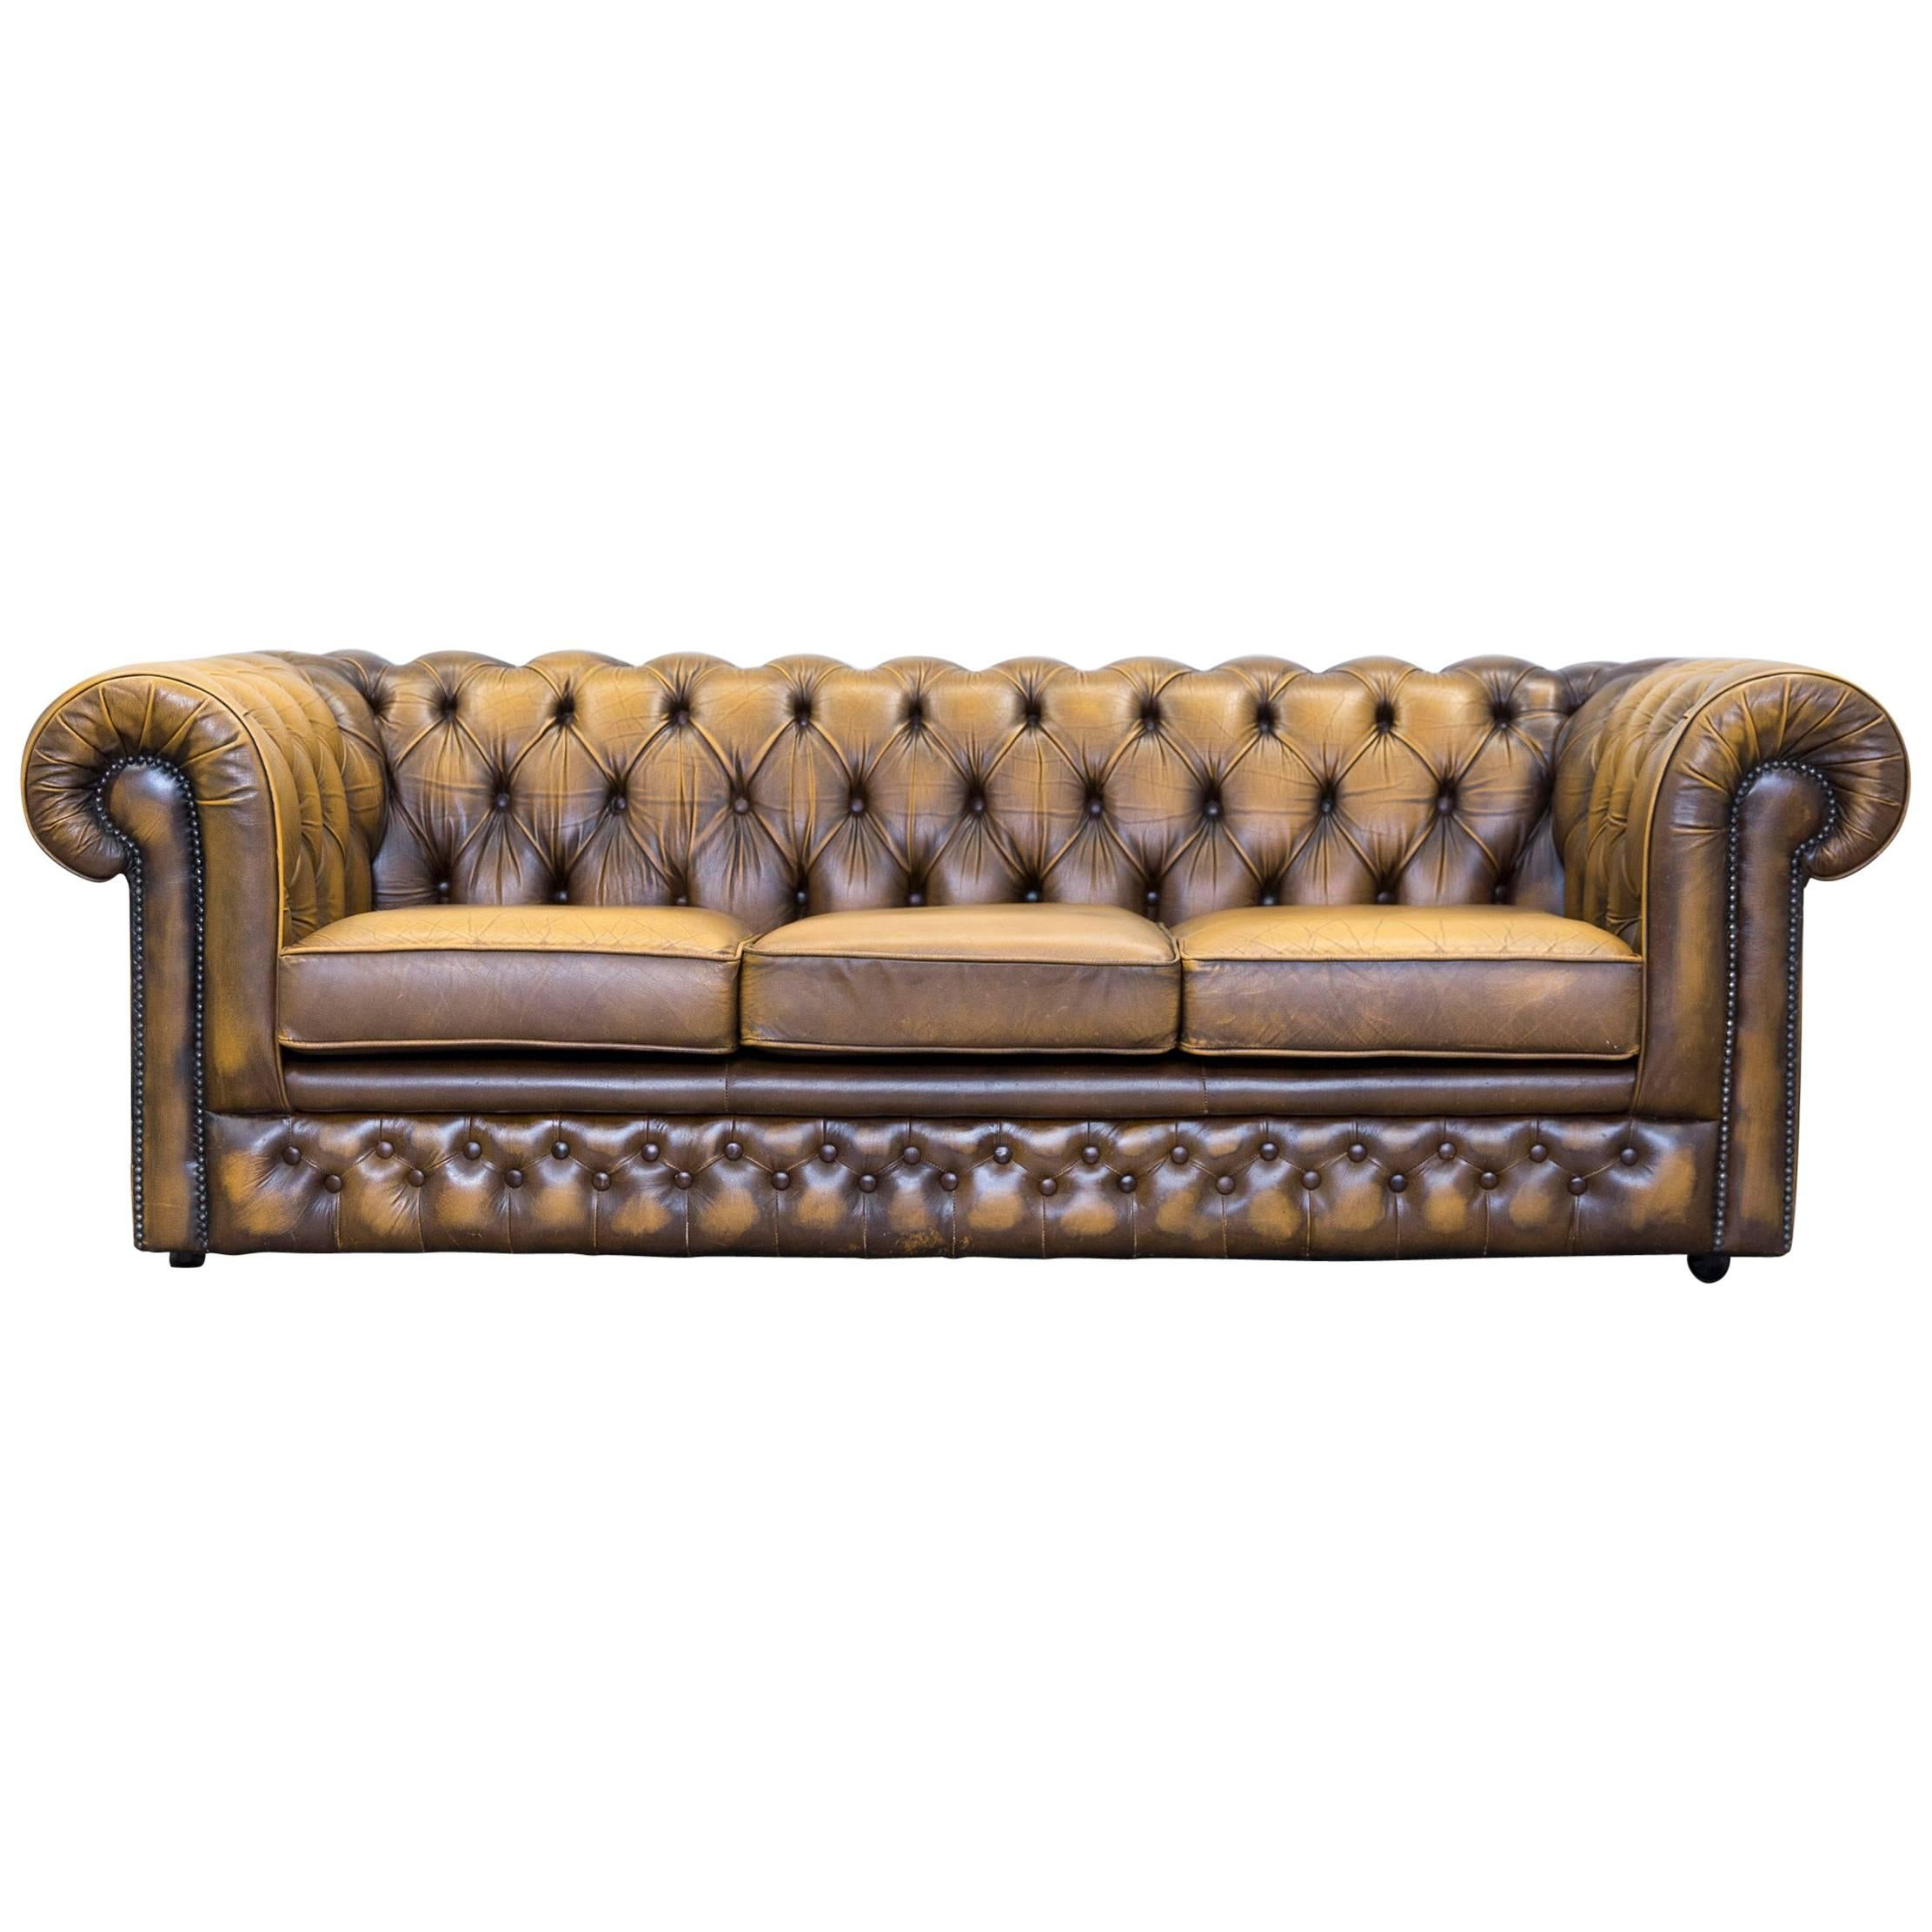 Captivating Thomas Lloyd Chesterfield Leather Sofa Ocre Brown Three Seat Couch Retro  Vintage 1